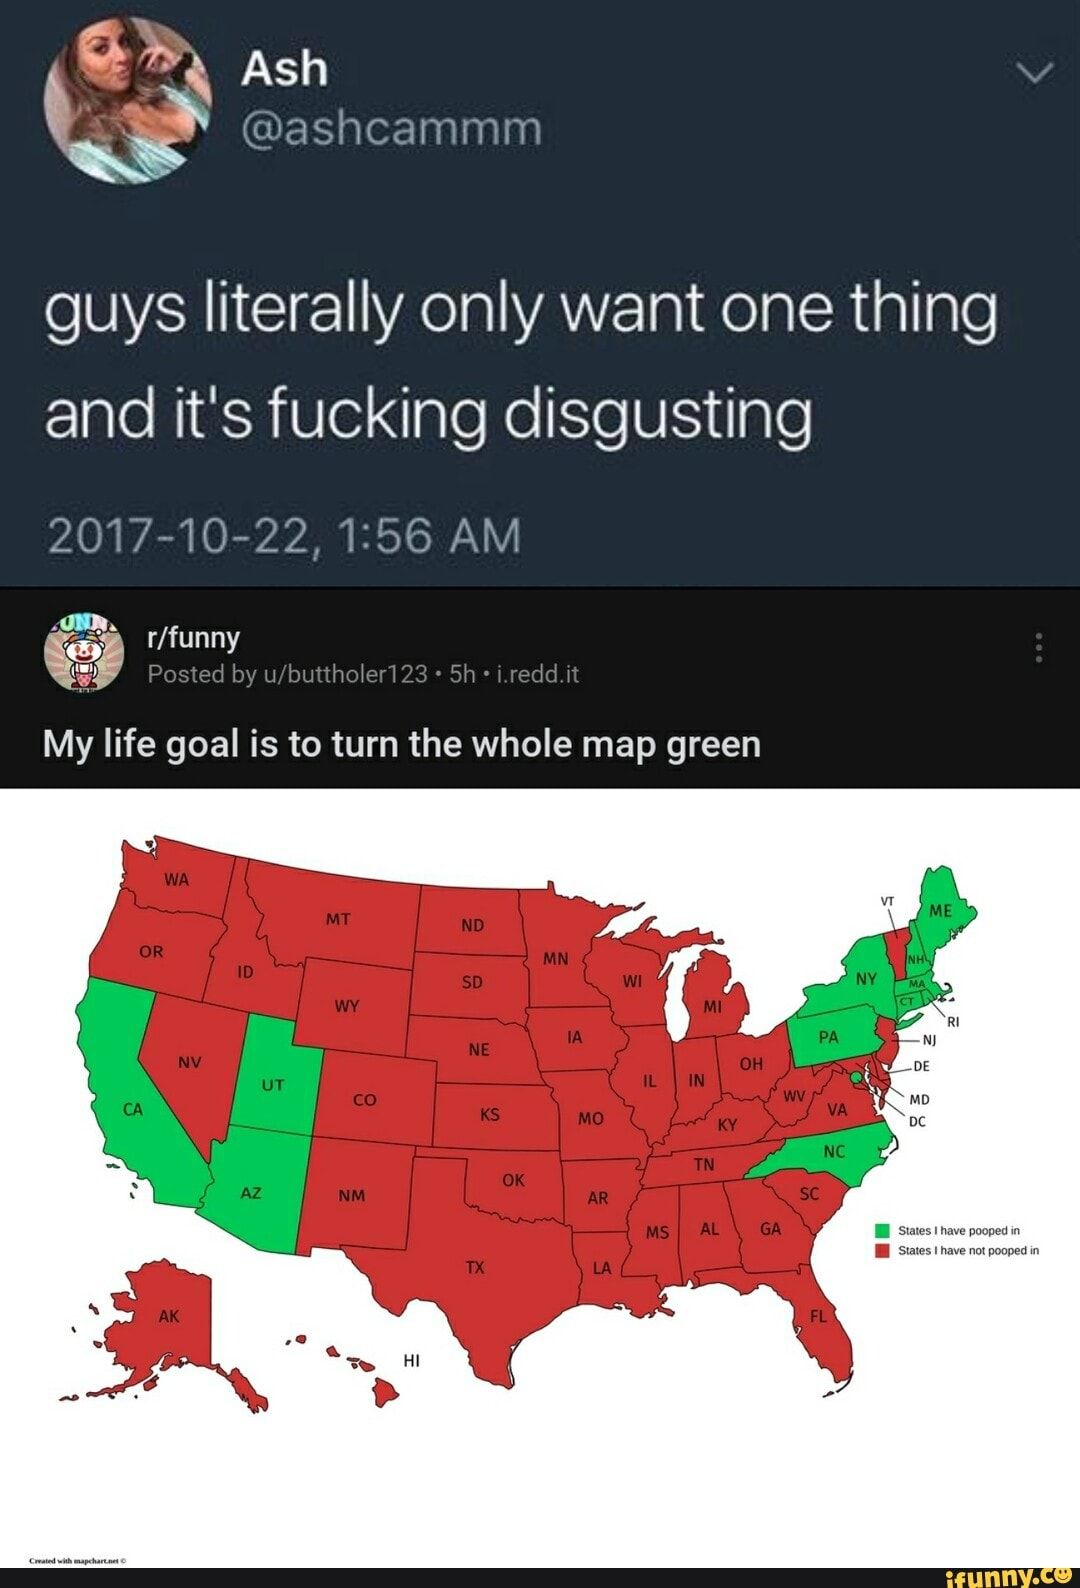 Ash @ashcammm guys literally only want one thing and it's fucking disgusting 2017-10-22, AM '/funny Posted by Sh it My life goal is to turn the whole map green - )